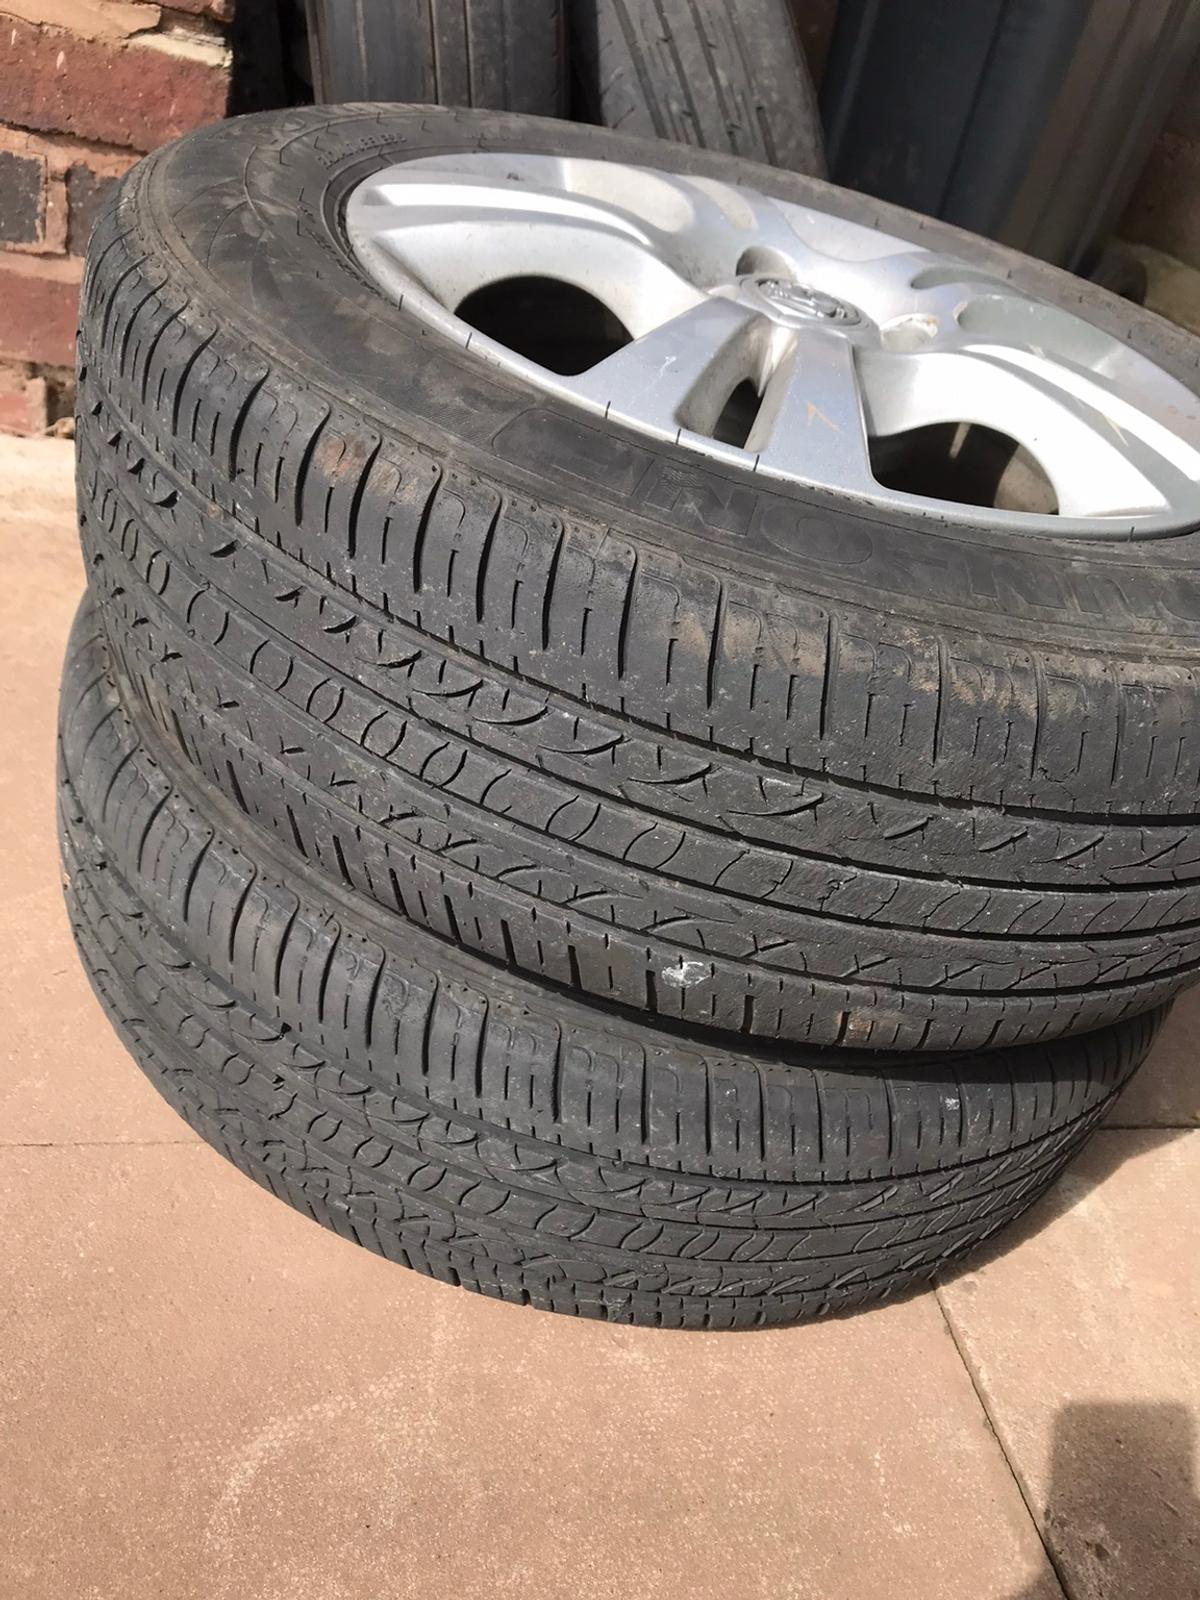 Vauxhall Corsa alloy wheels for sale all good condition do need 2 tyres